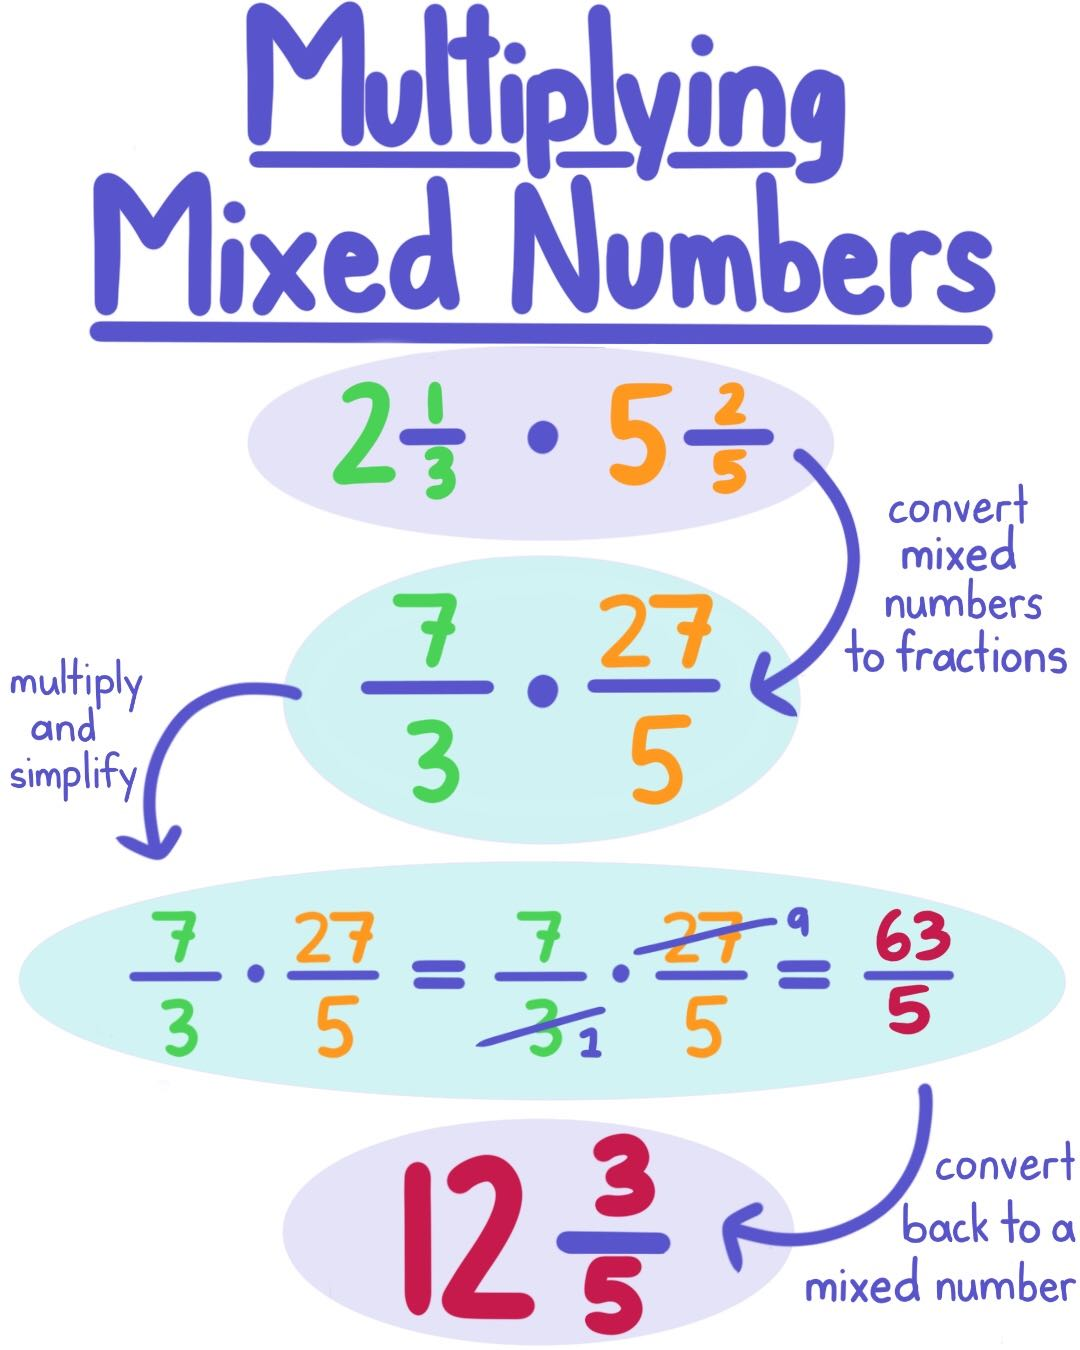 Multiplying Mixed Numbers - Expii